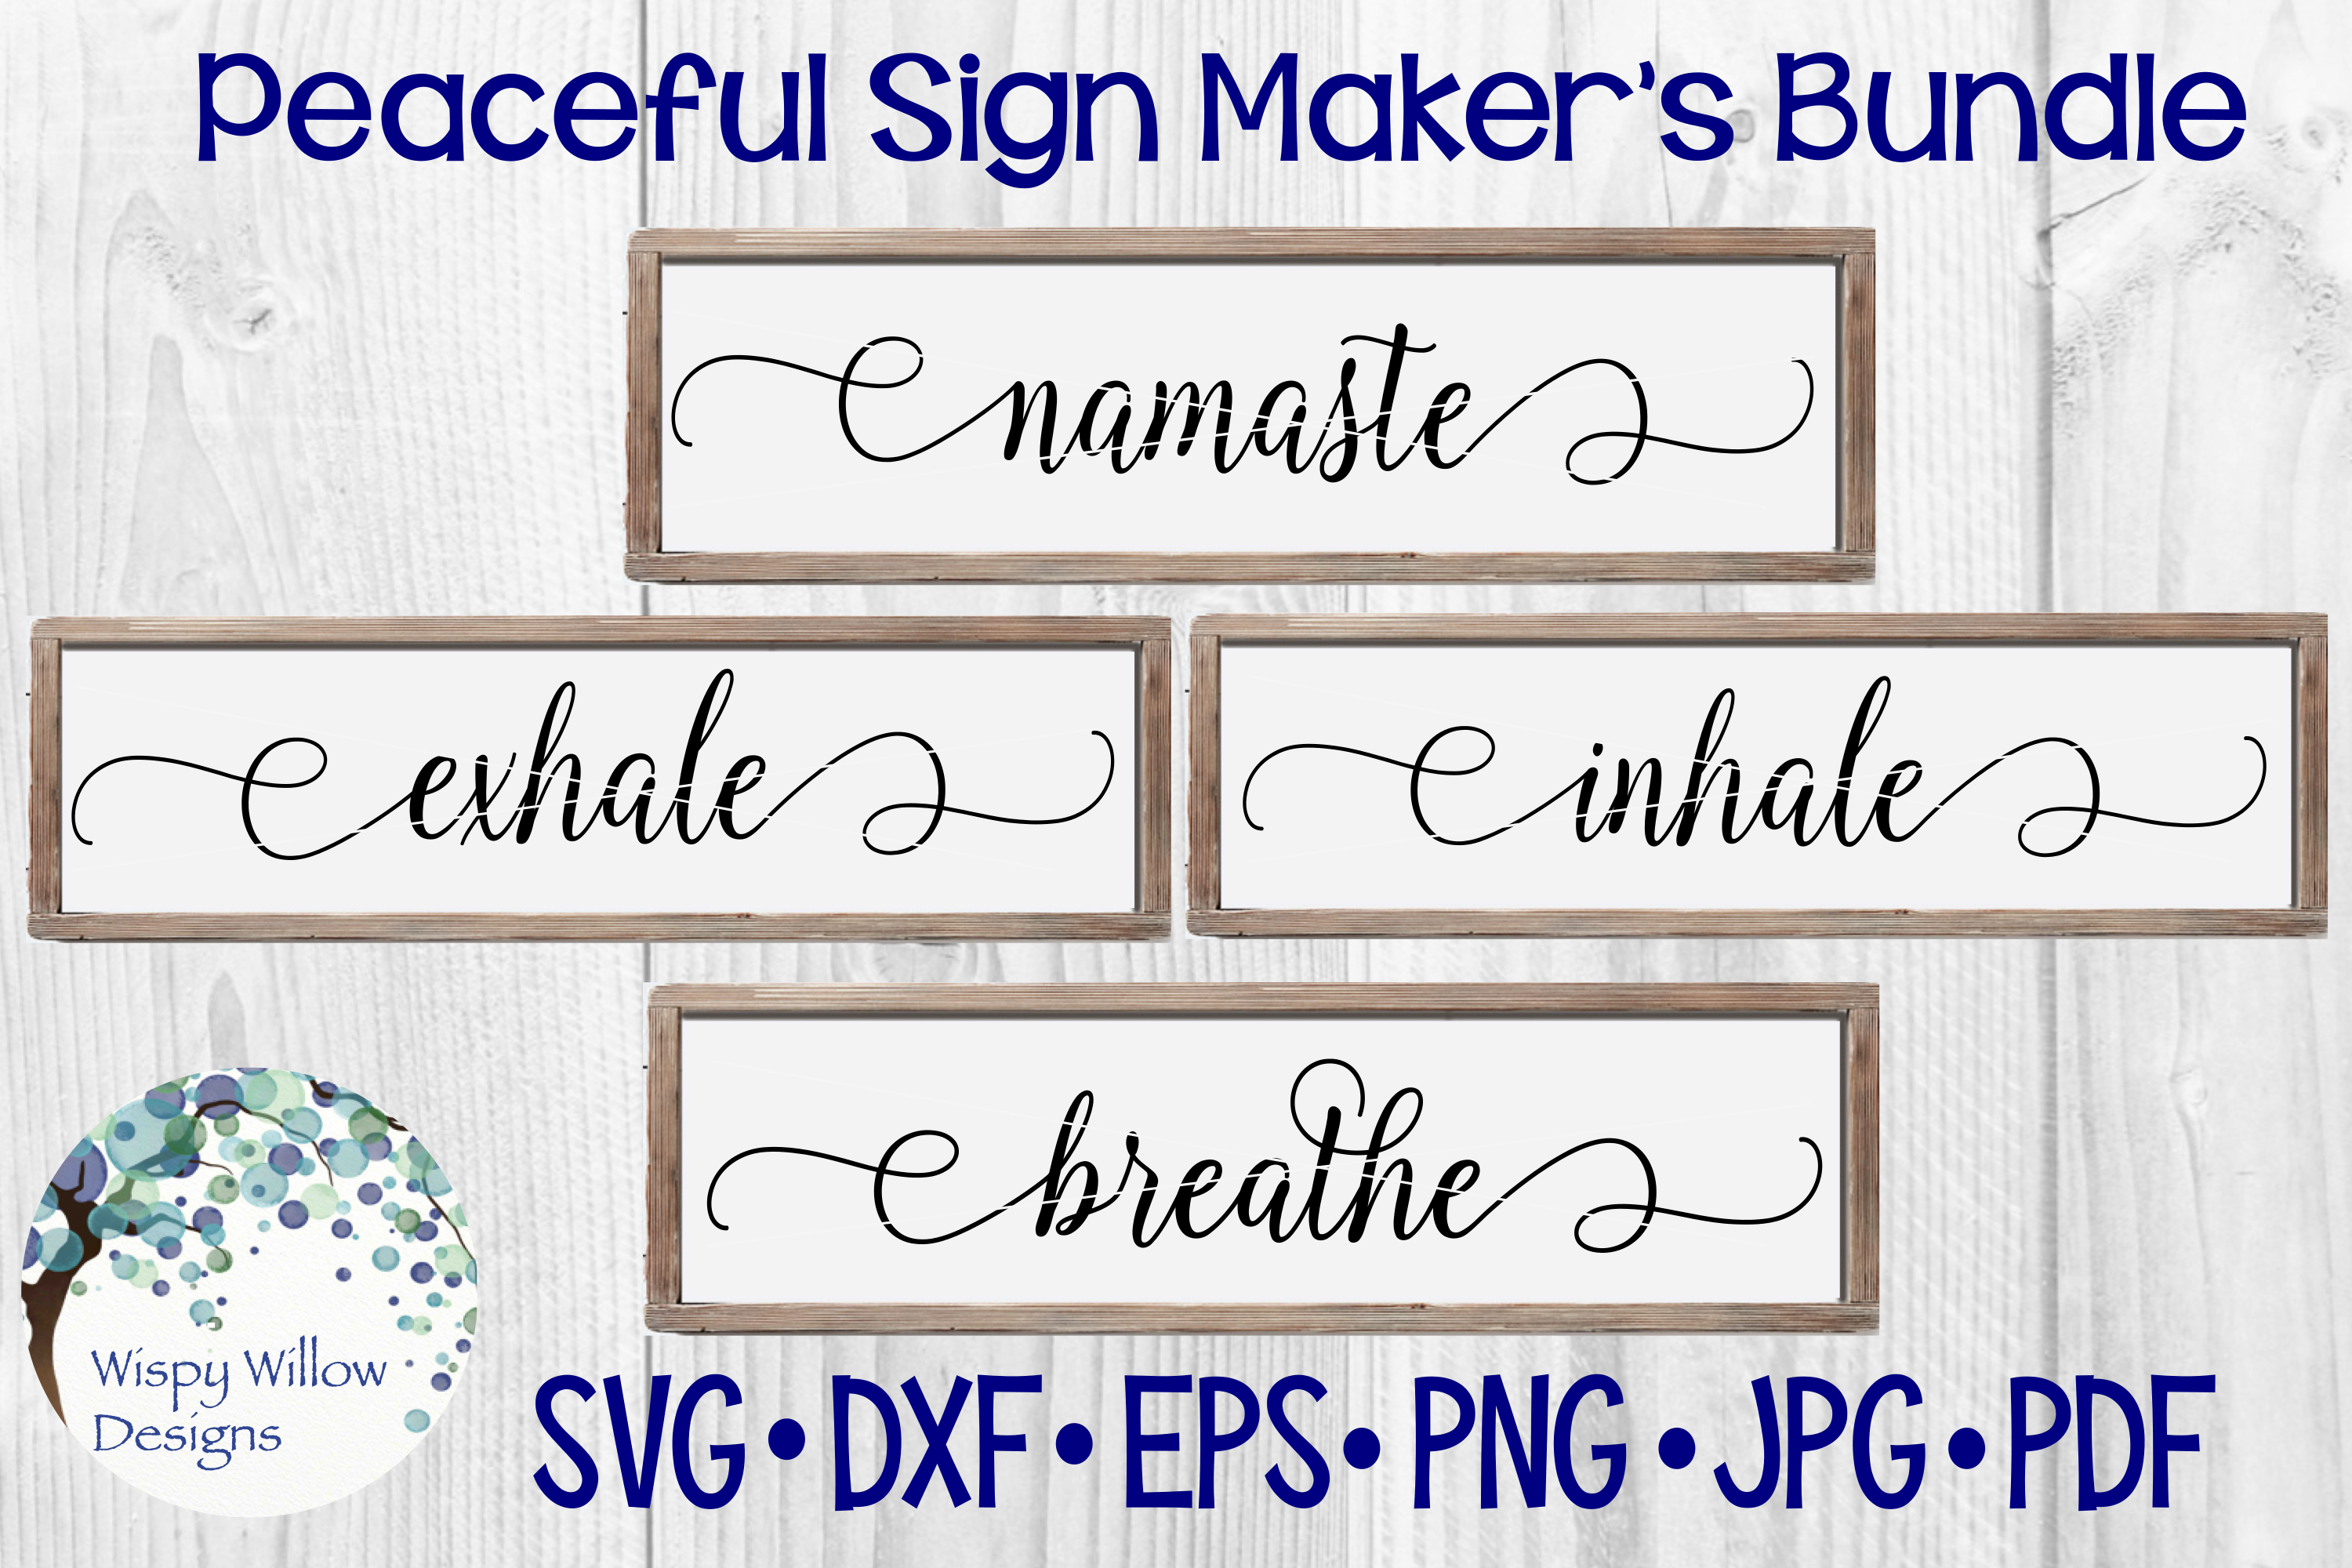 Download Free Peaceful Sign Maker S Bundle Graphic By Wispywillowdesigns for Cricut Explore, Silhouette and other cutting machines.